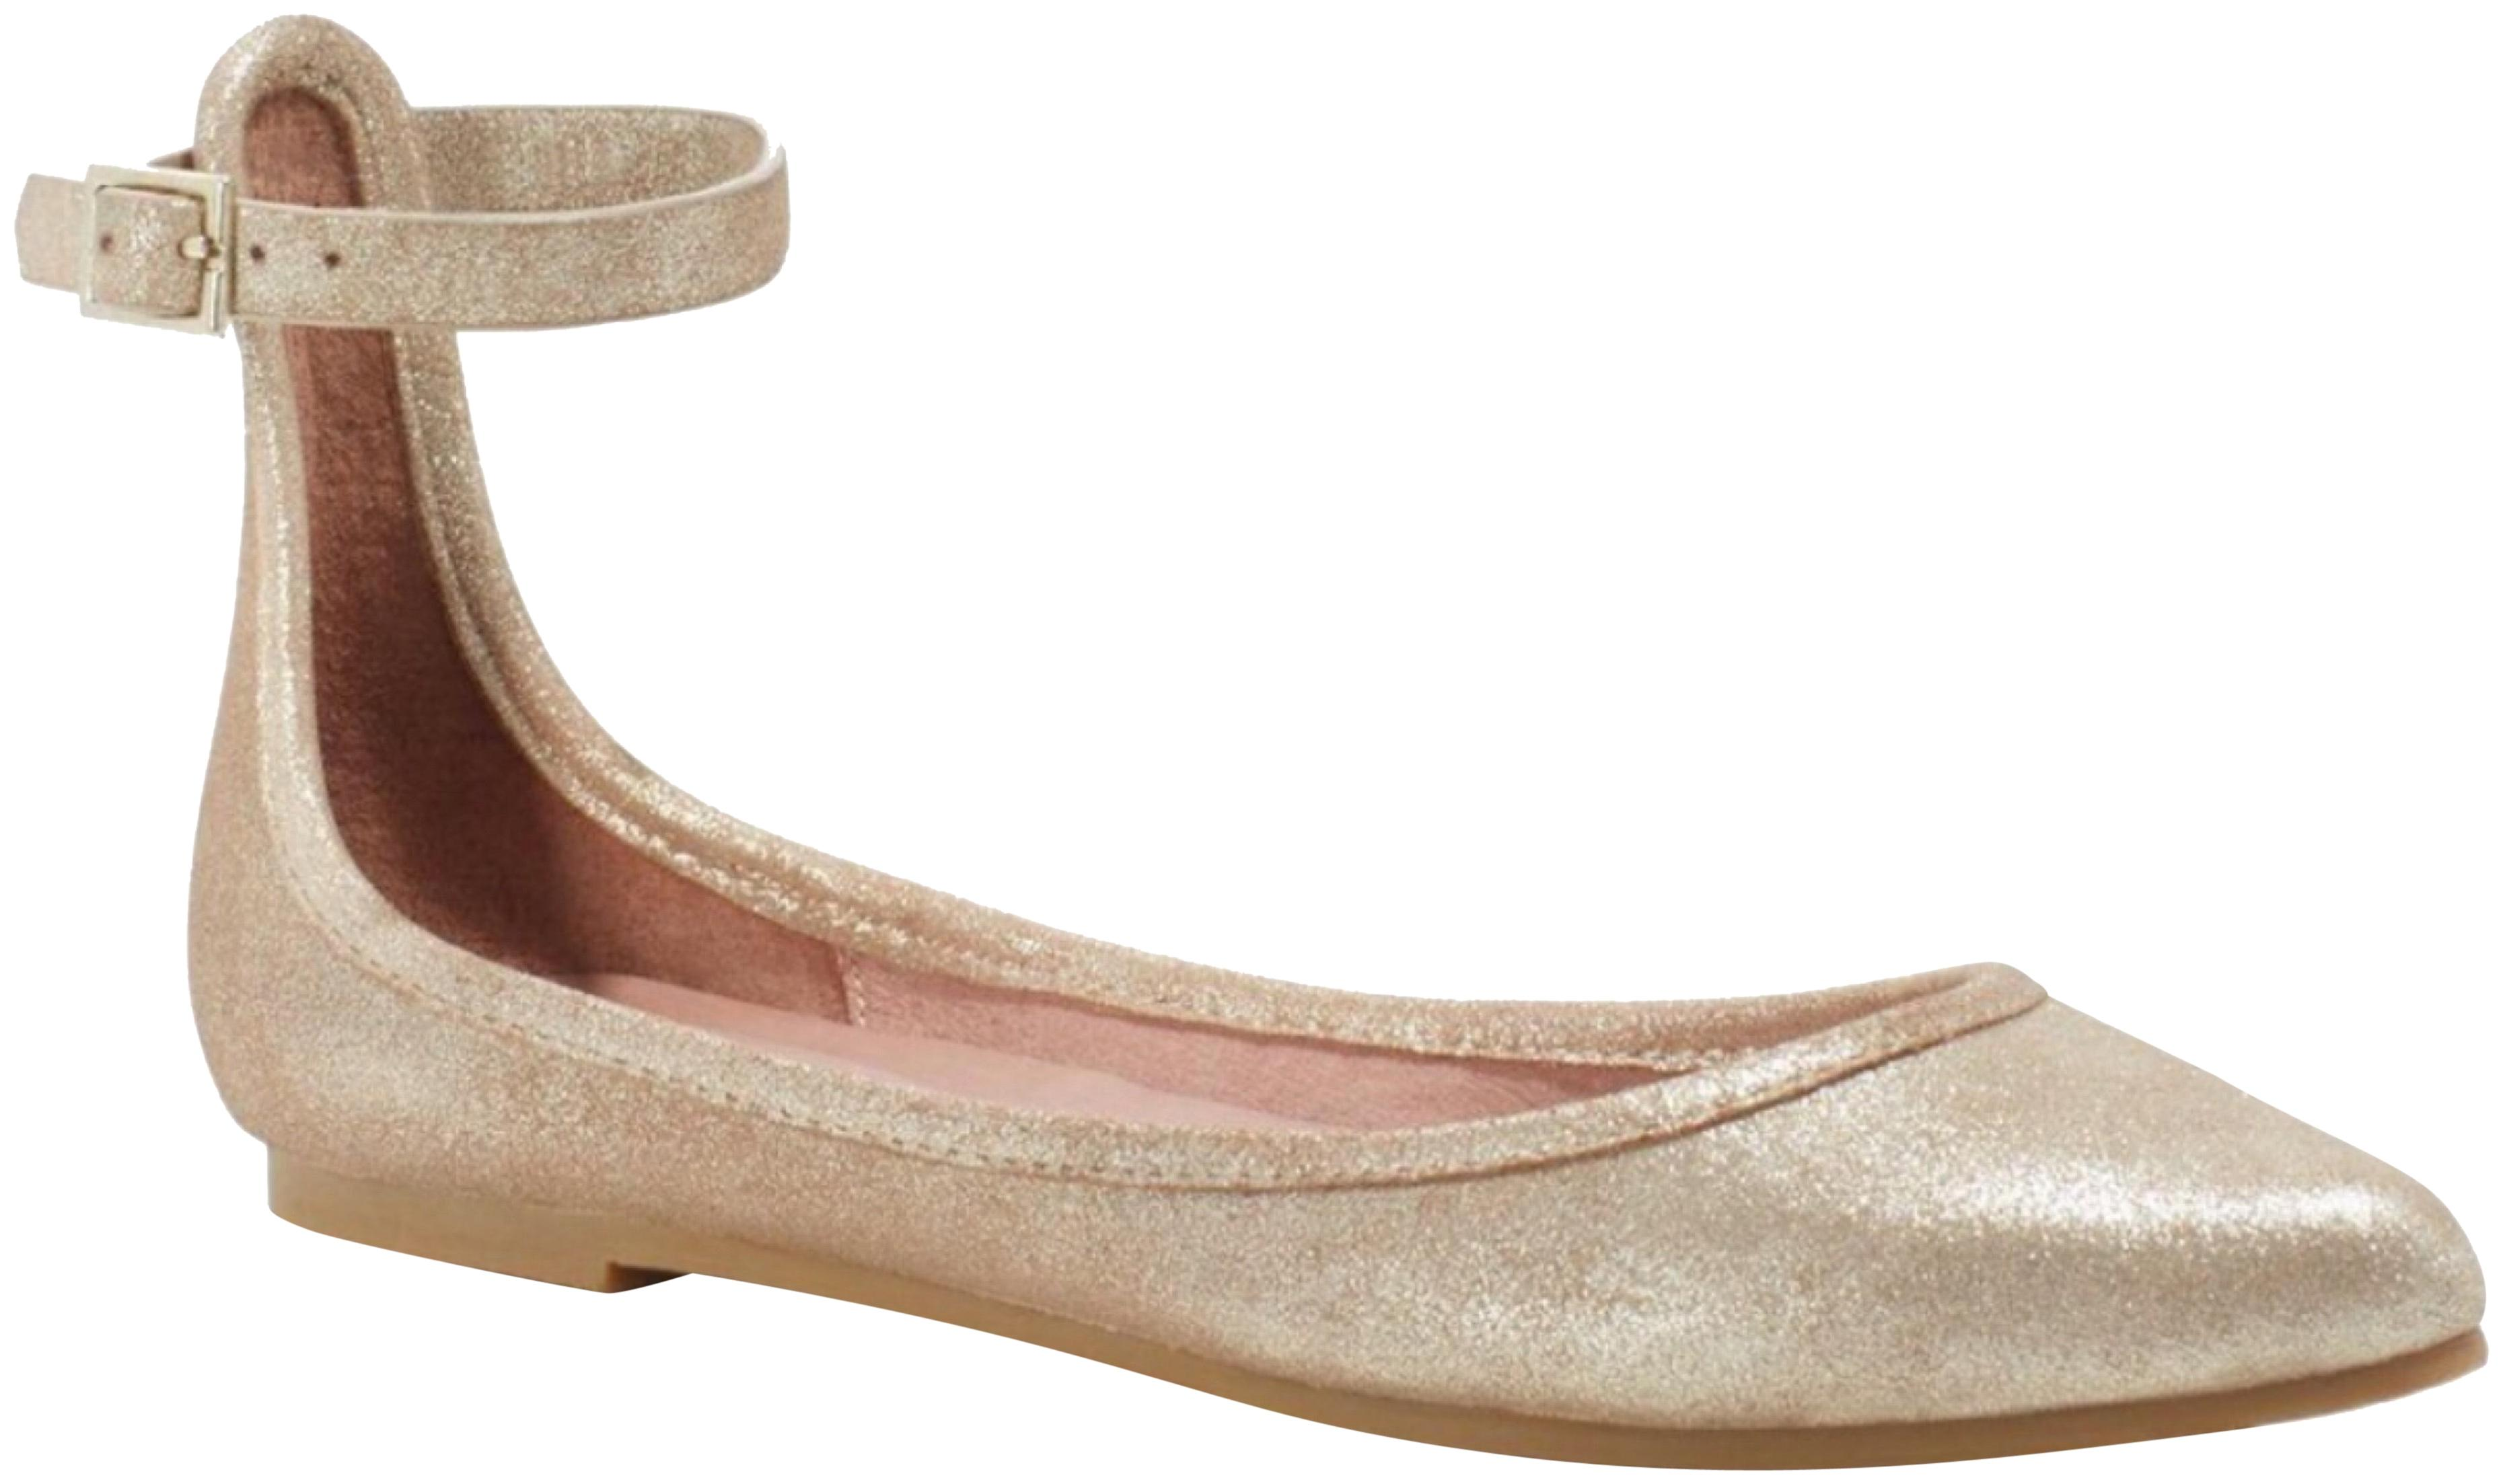 f84474bd2 Joie Joie Joie Gold Temple Metallic Shimmer Ankle Strap Flats Size US 9.5  Regular (M